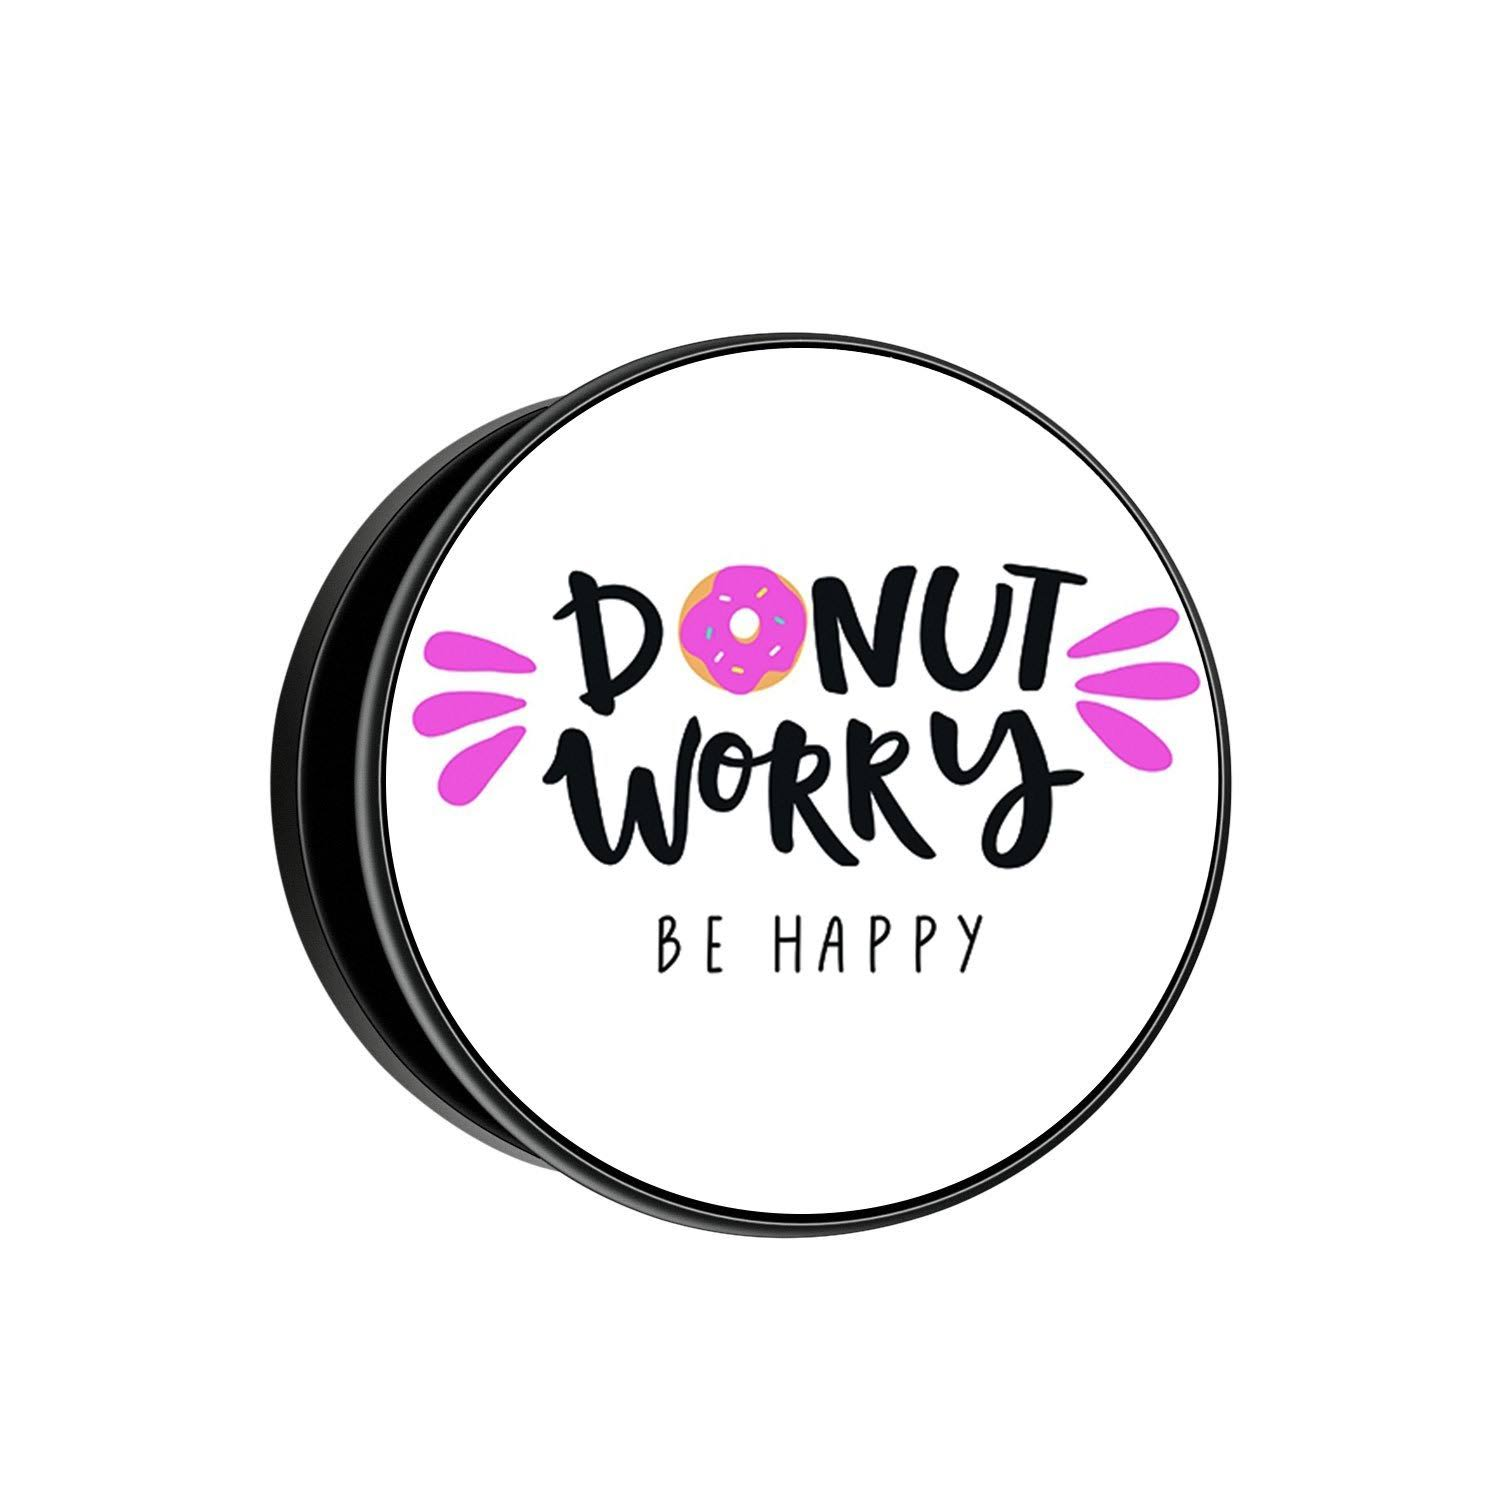 Fab Pops Mount Grip for Smart Phones and Tablets - Donut Worry